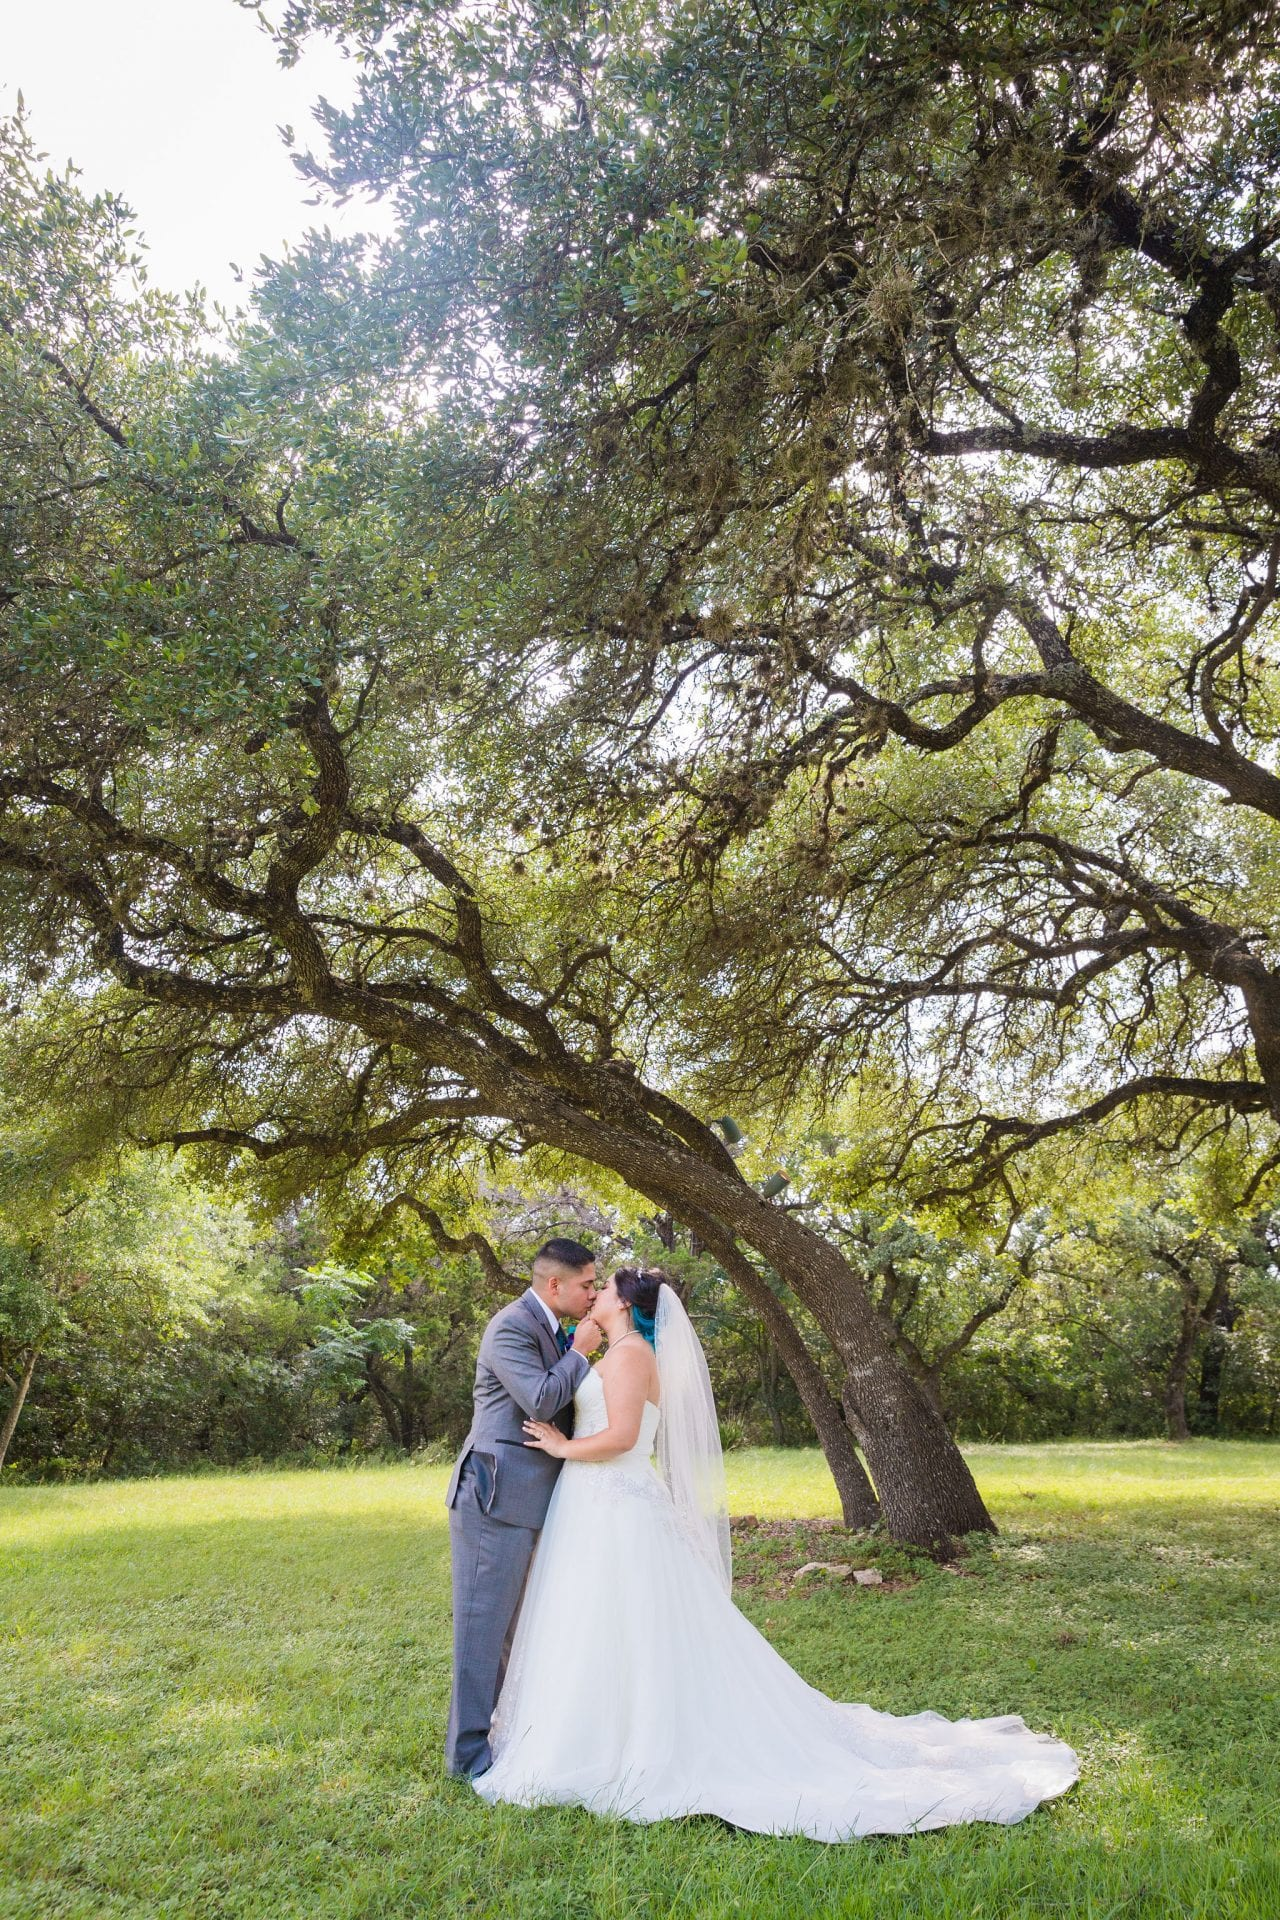 Alex and Adrien Wedding at The Gardens at Old Town couple under tree